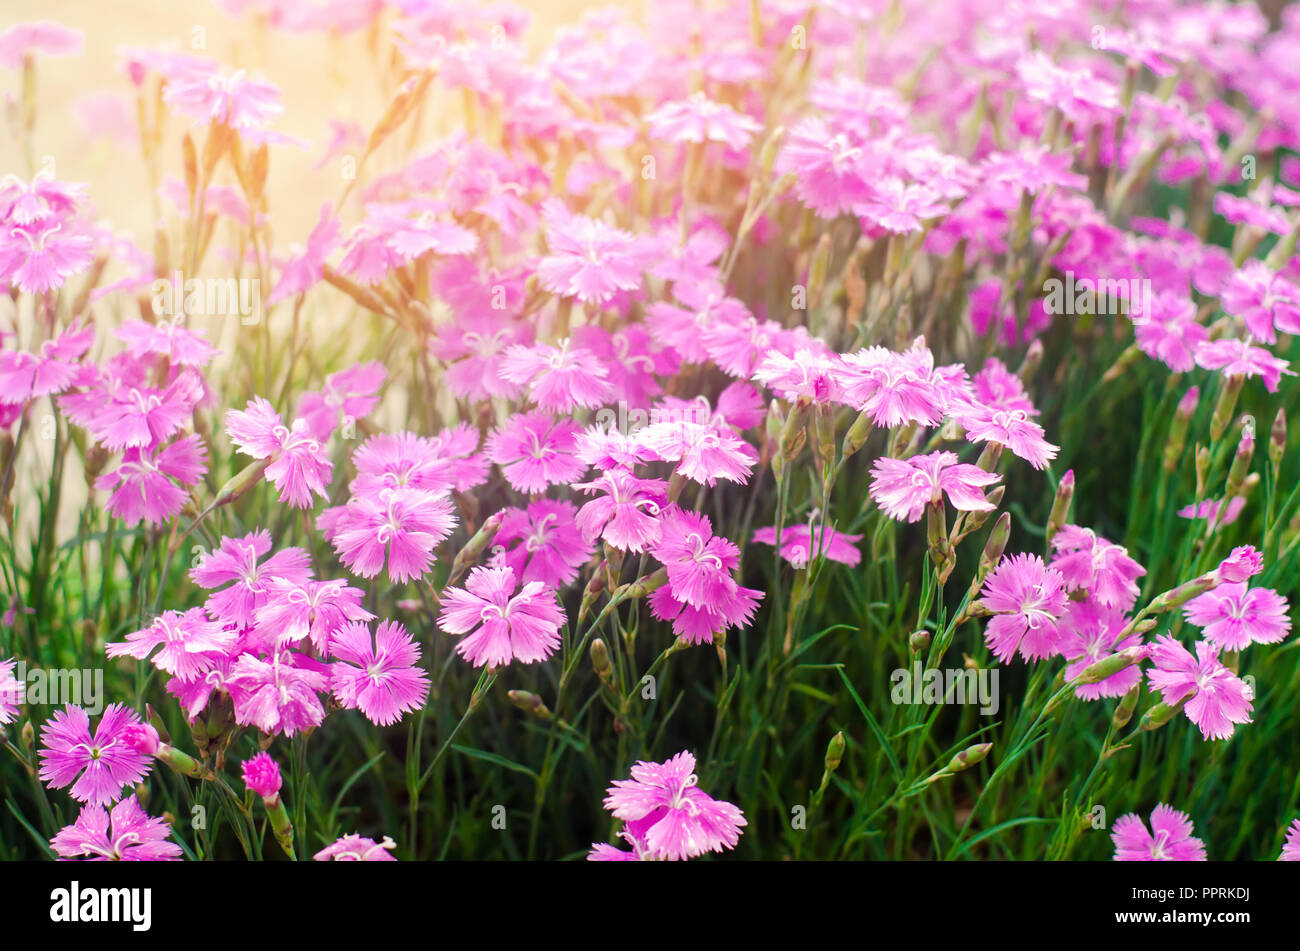 Beautiful spring flowers rose maiden pinks growing in the garden on beautiful spring flowers rose maiden pinks growing in the garden on a sunny day background for design natural wallpaper izmirmasajfo